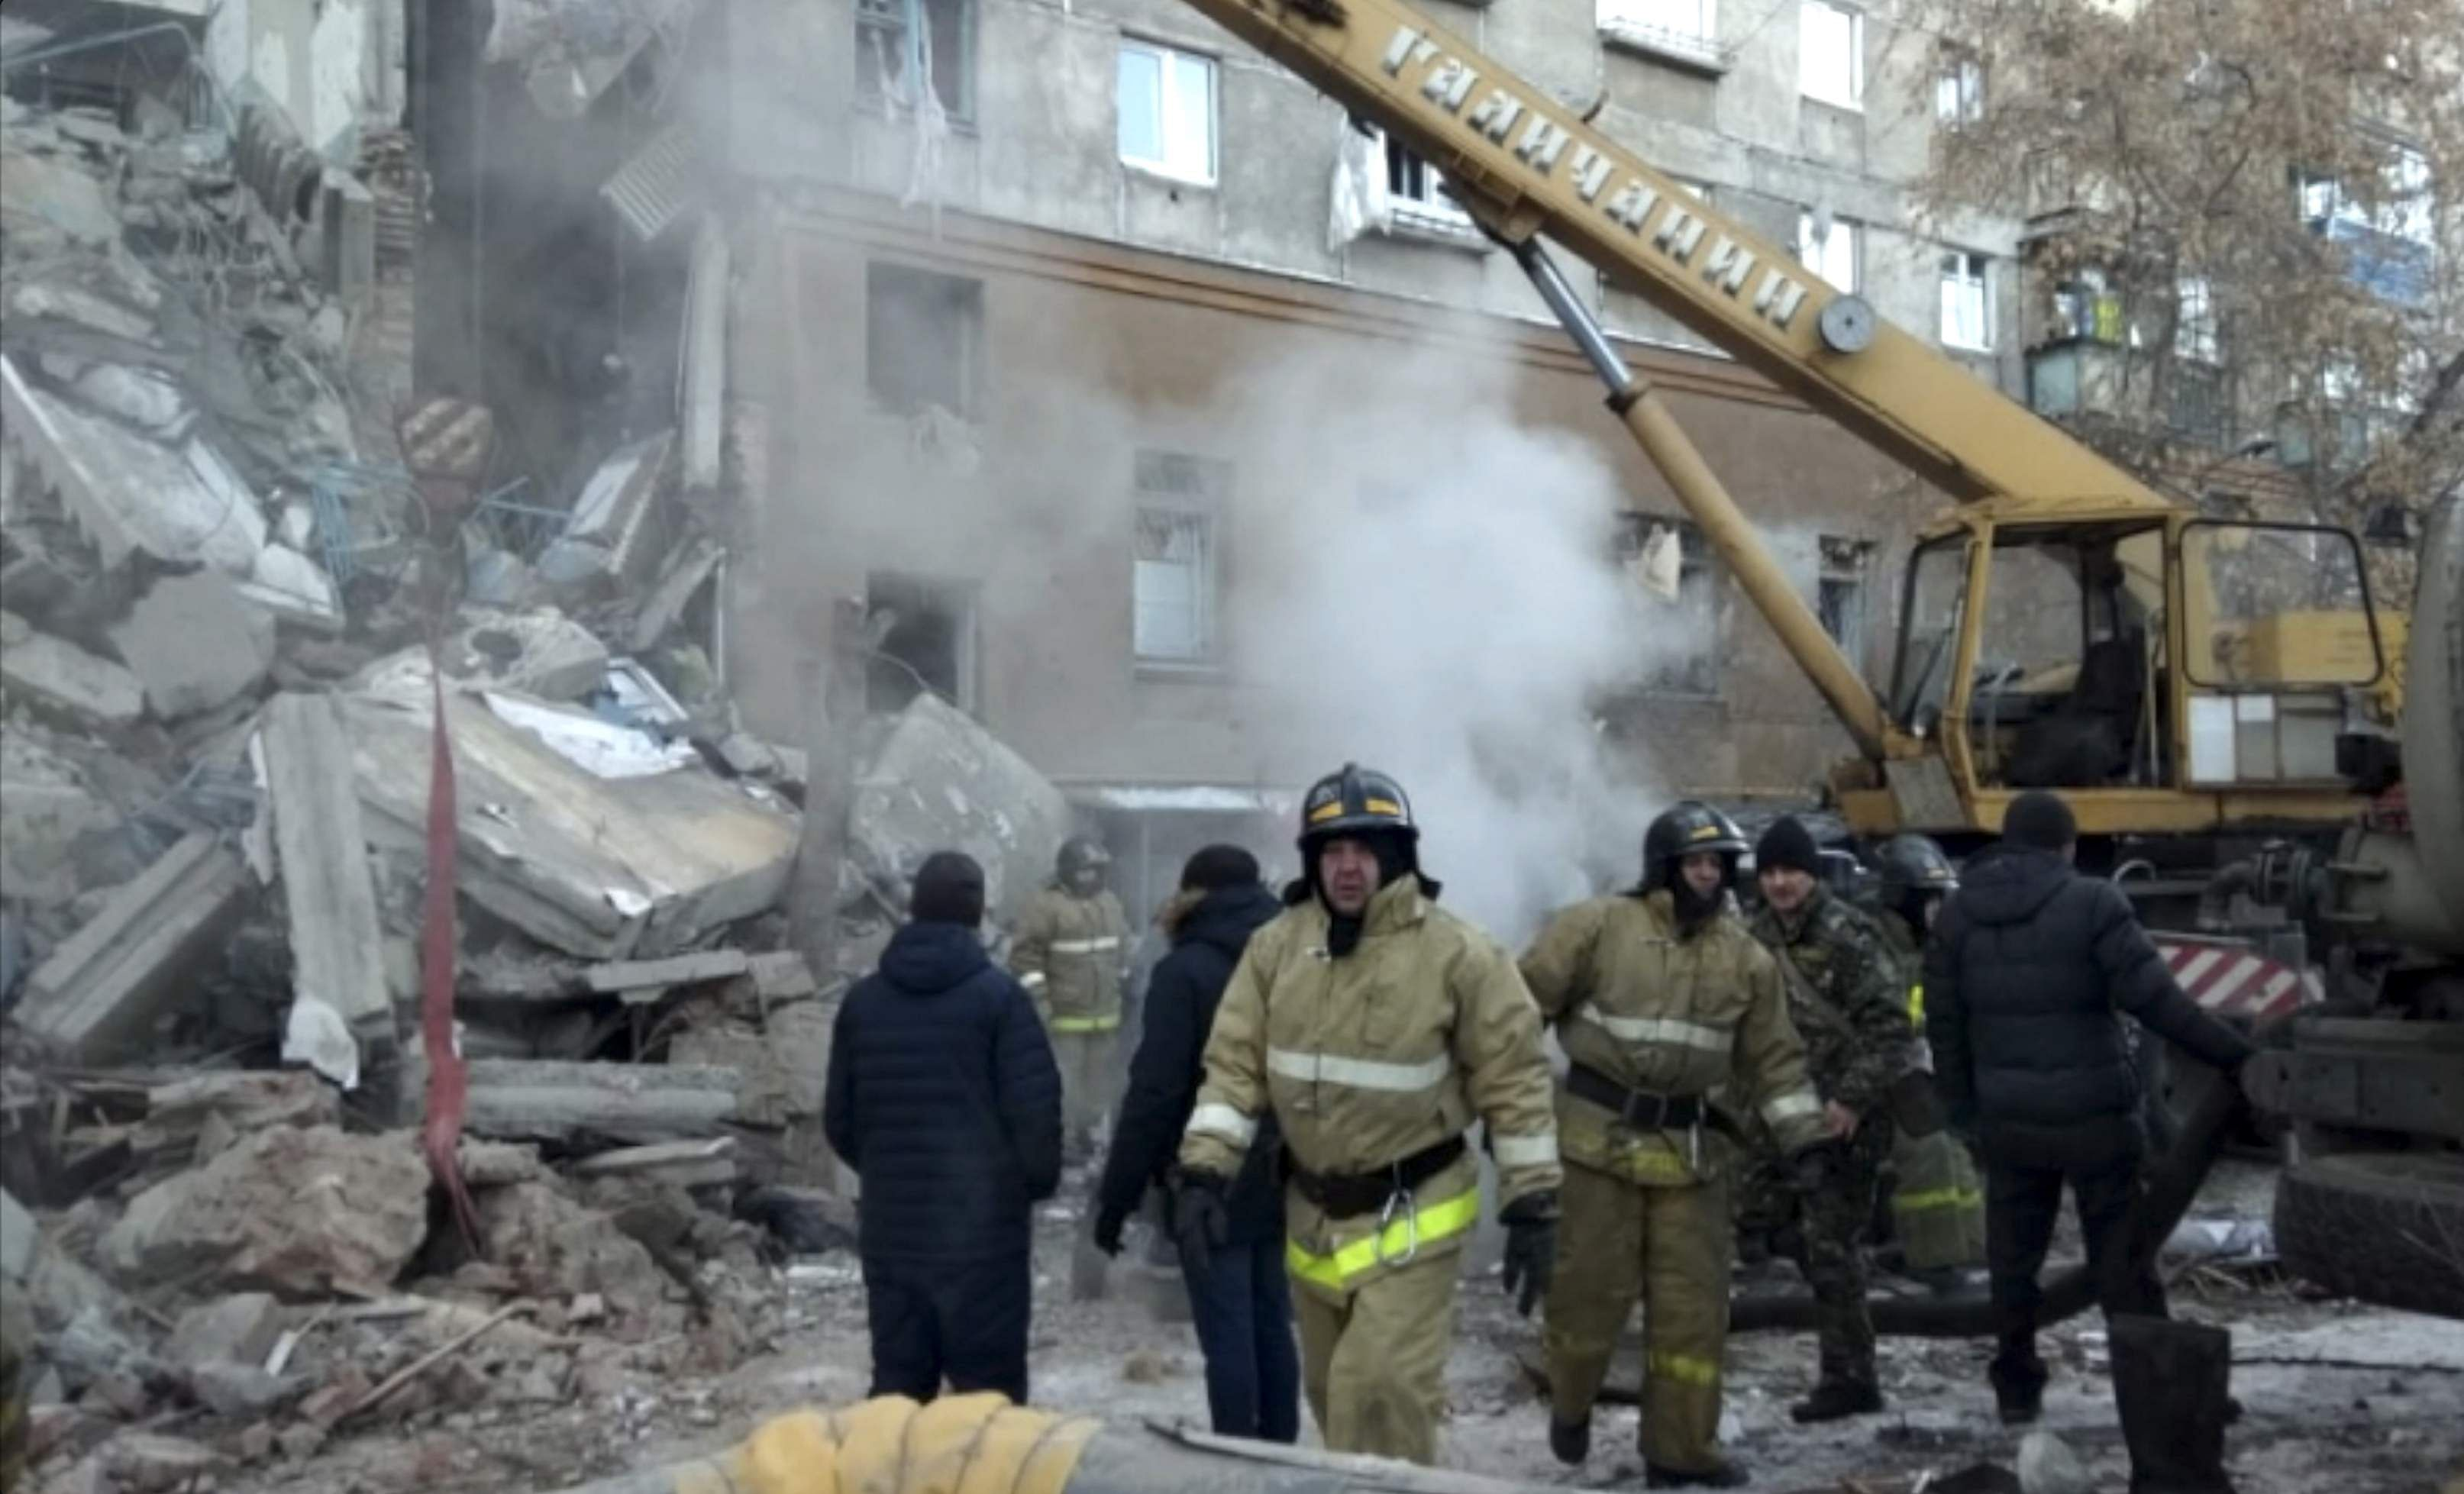 3 dead, 79 missing in Russia apartment block explosion